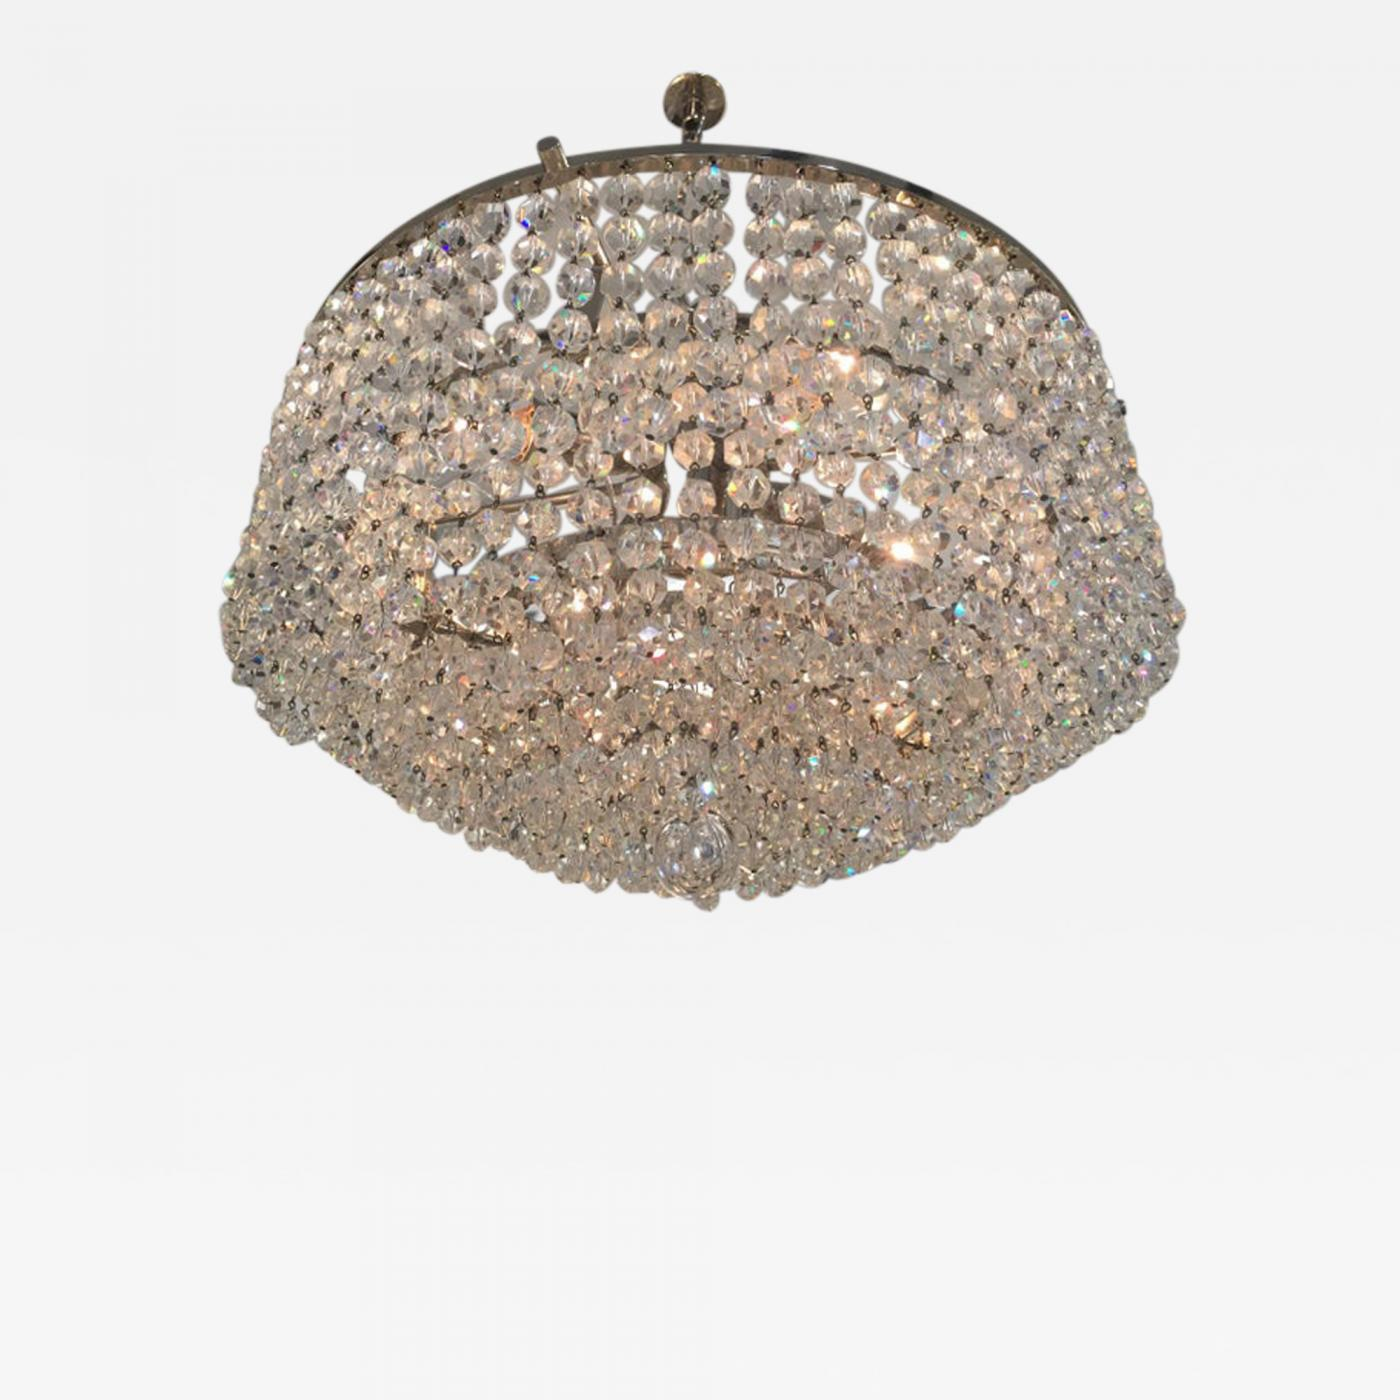 Lewis Strauss Sons Petite Strauss Austrian Crystal Nickel Finish Waterfall Chandelier